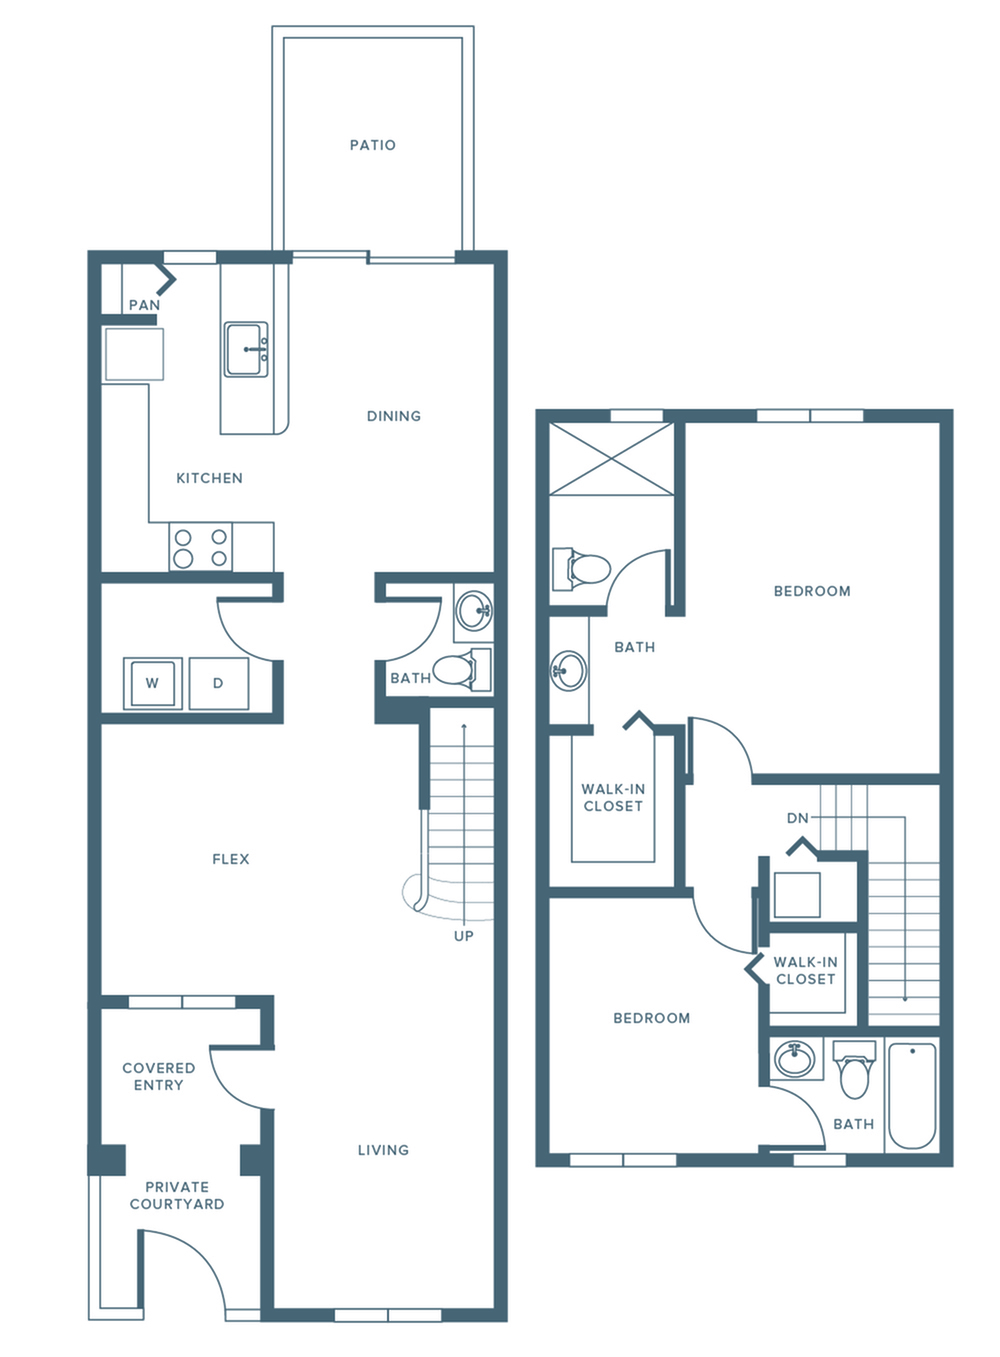 1379 square foot renovated two bedroom two and a half bath two level apartment floorplan image